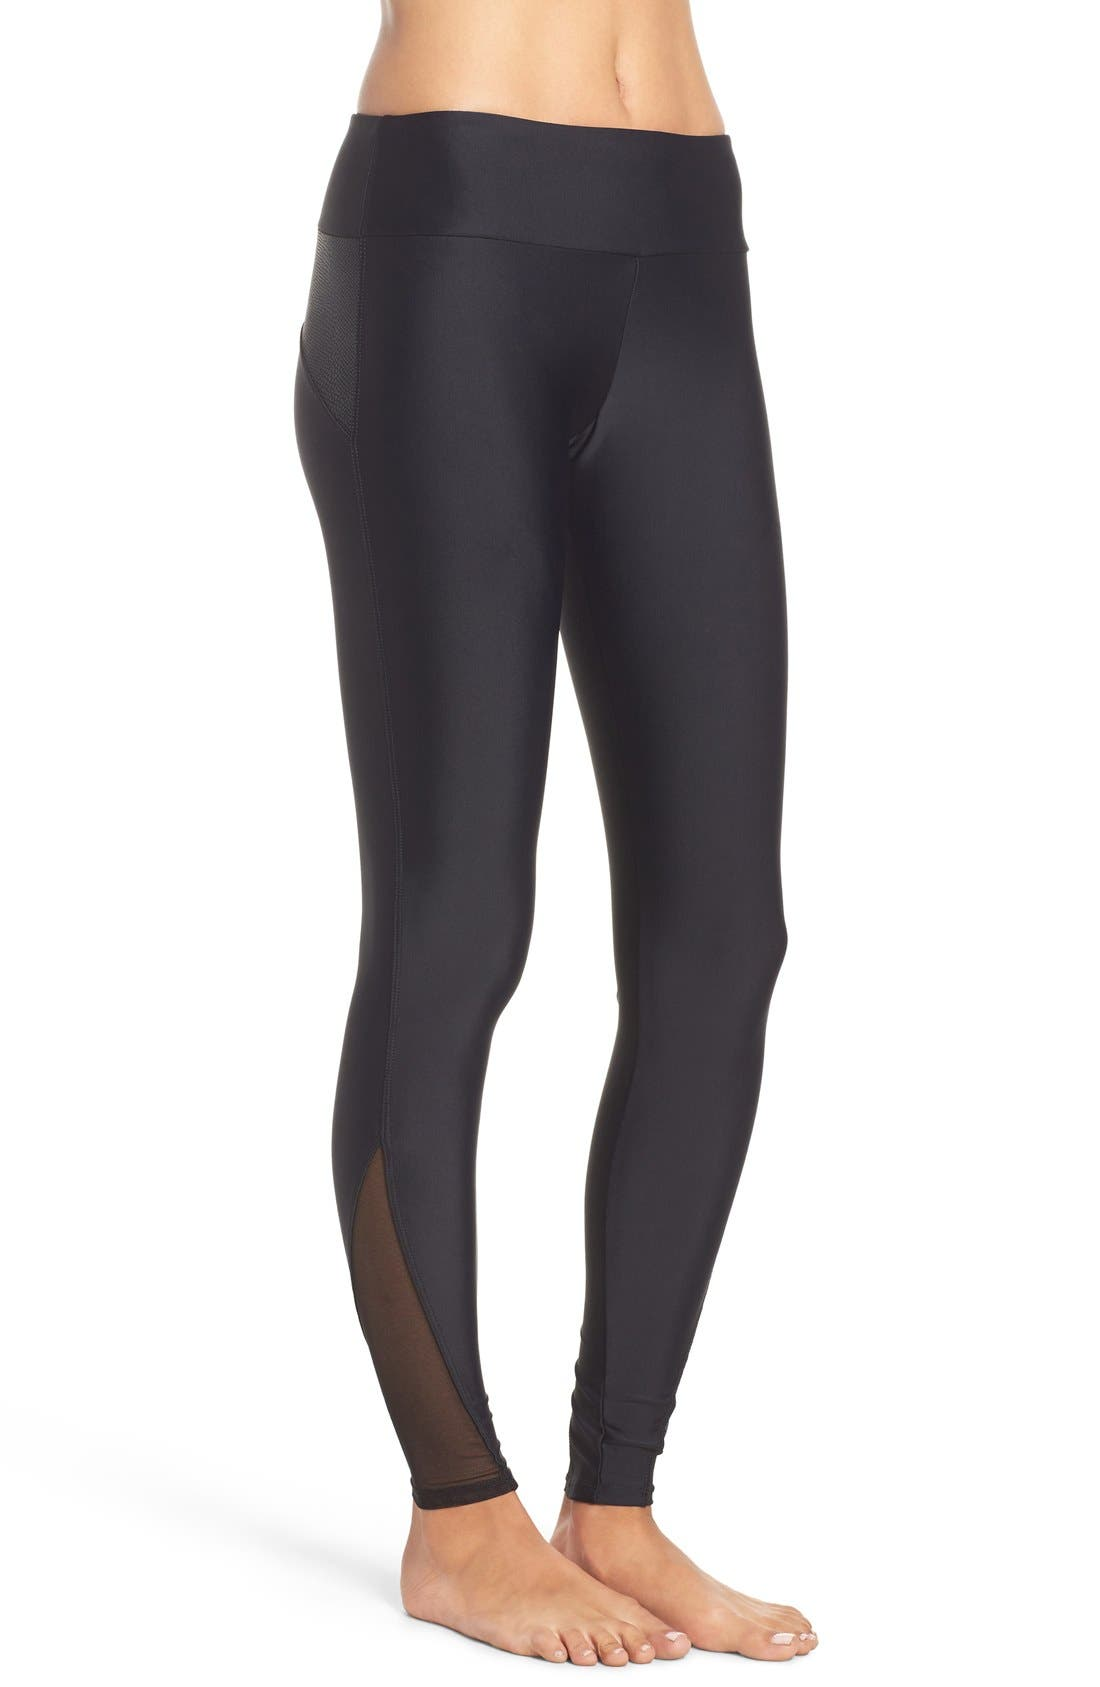 Shaper Leggings,                             Alternate thumbnail 9, color,                             001